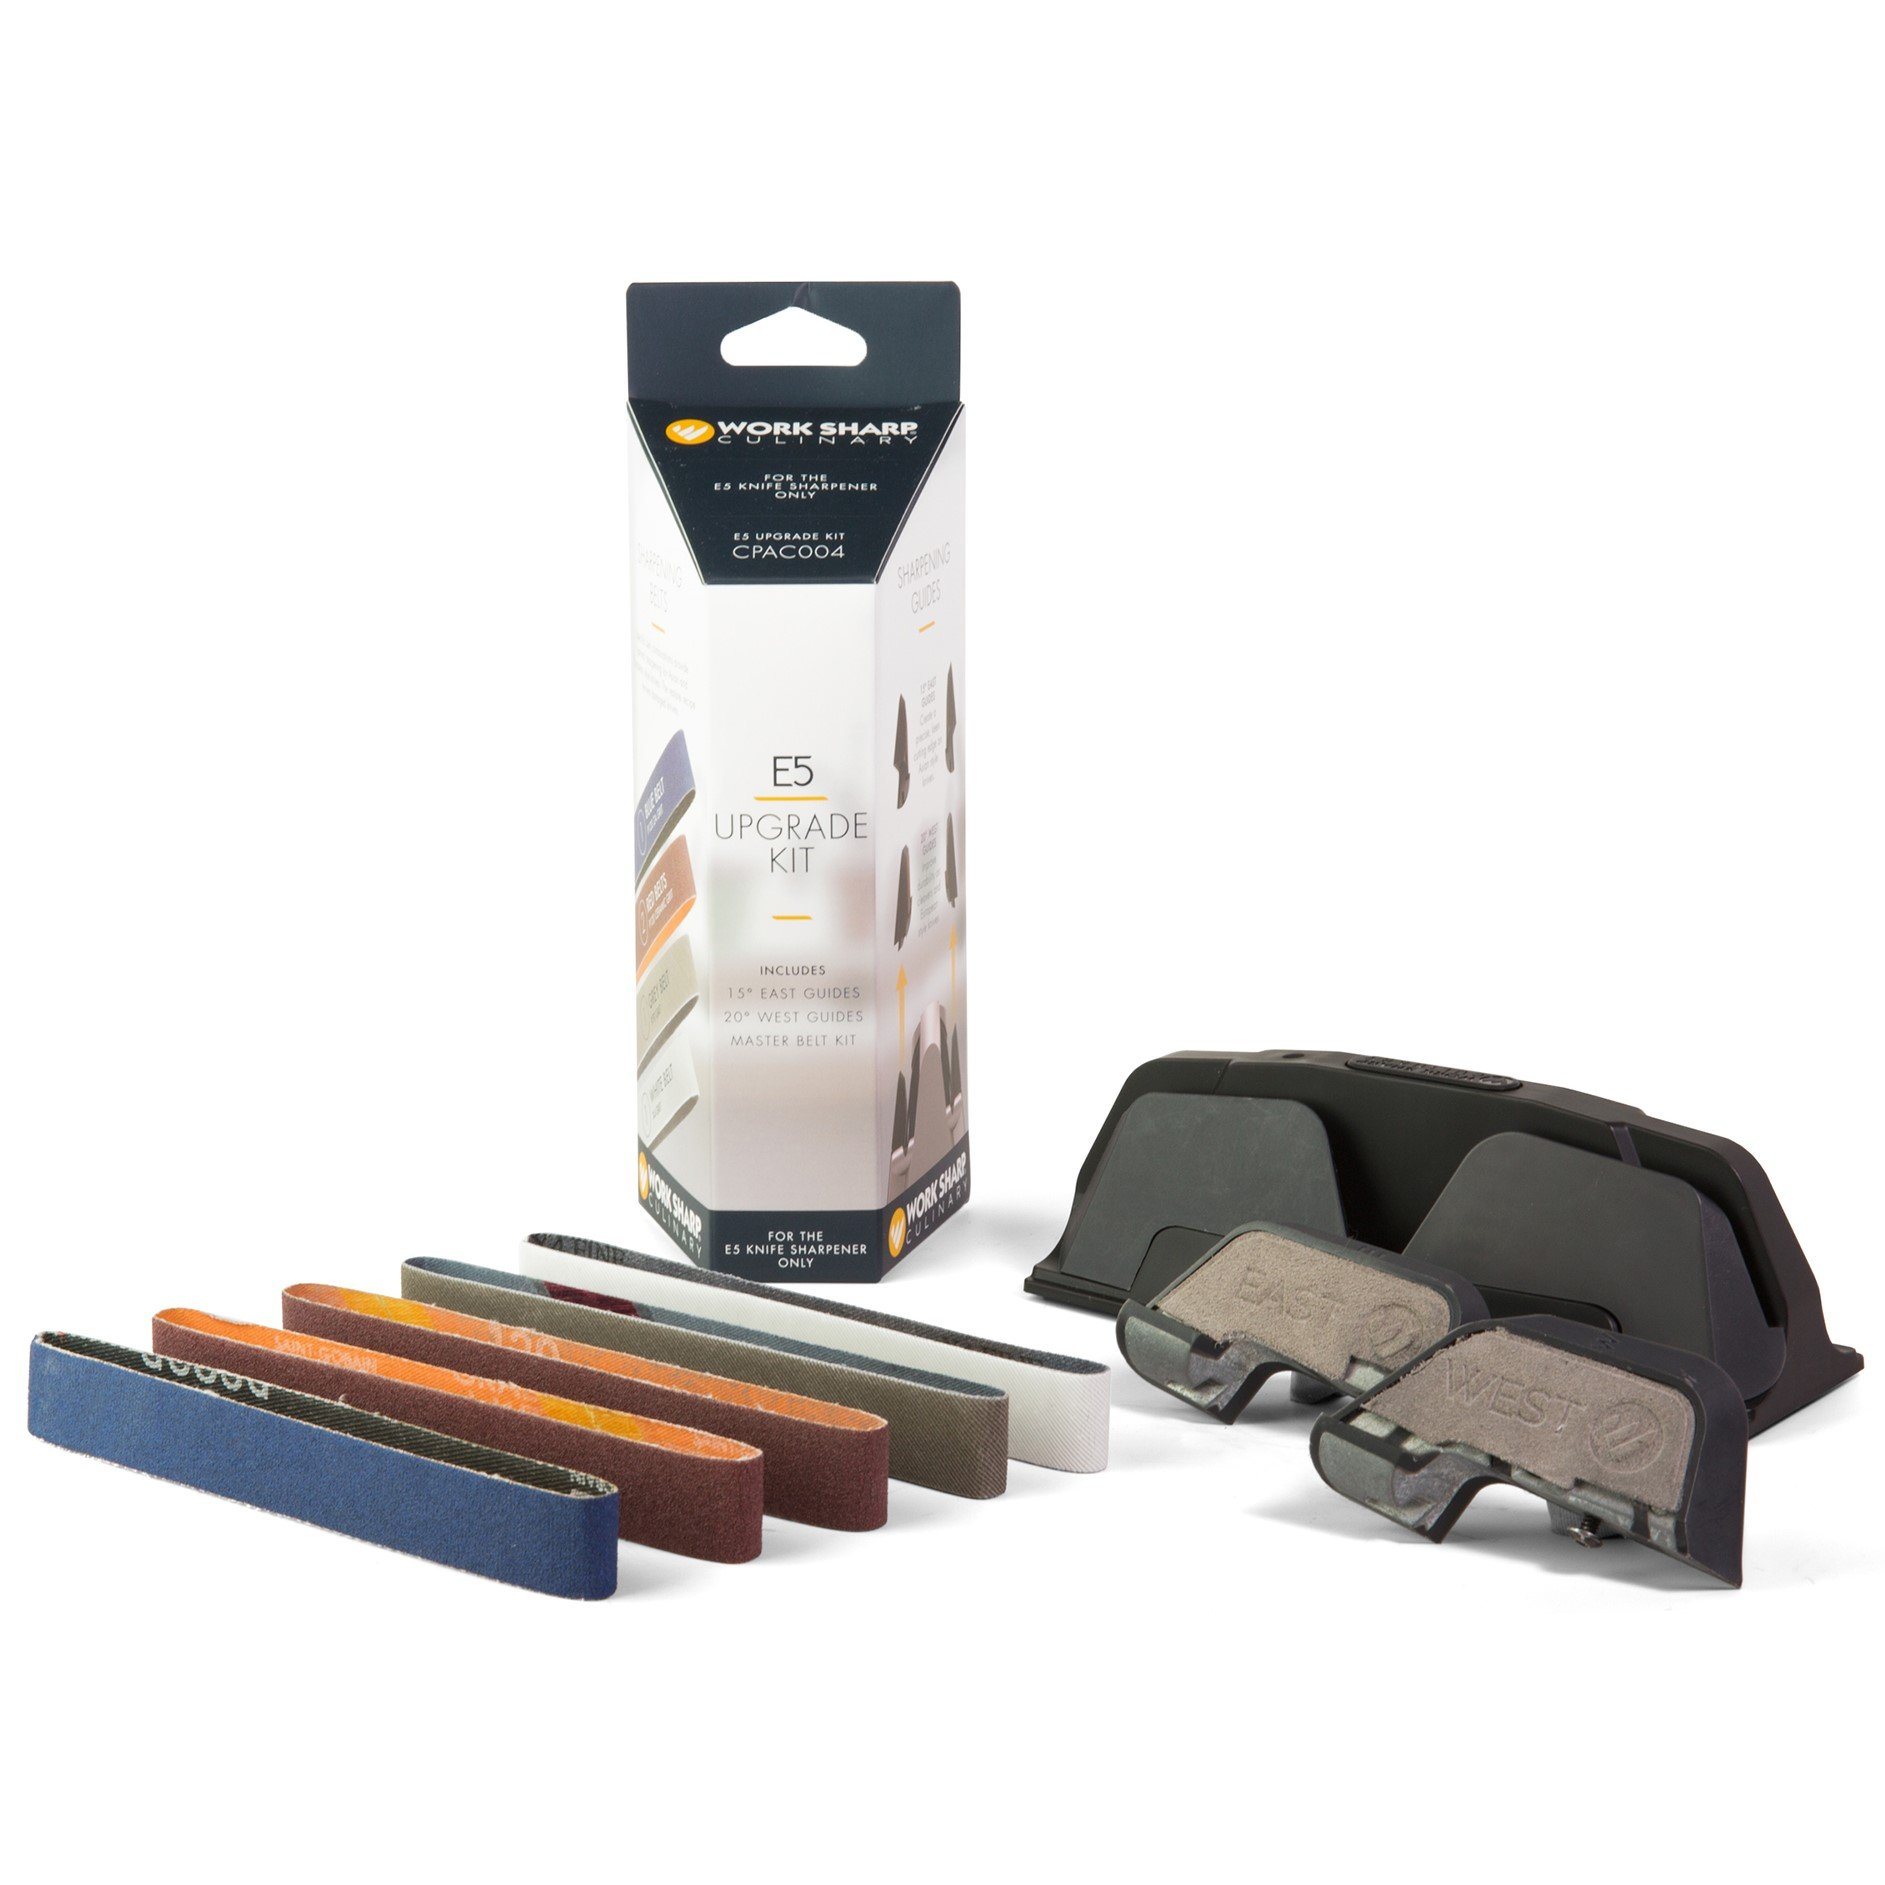 Work Sharp CPAC004 East and West Guides Upgrade Kit, Multicolor